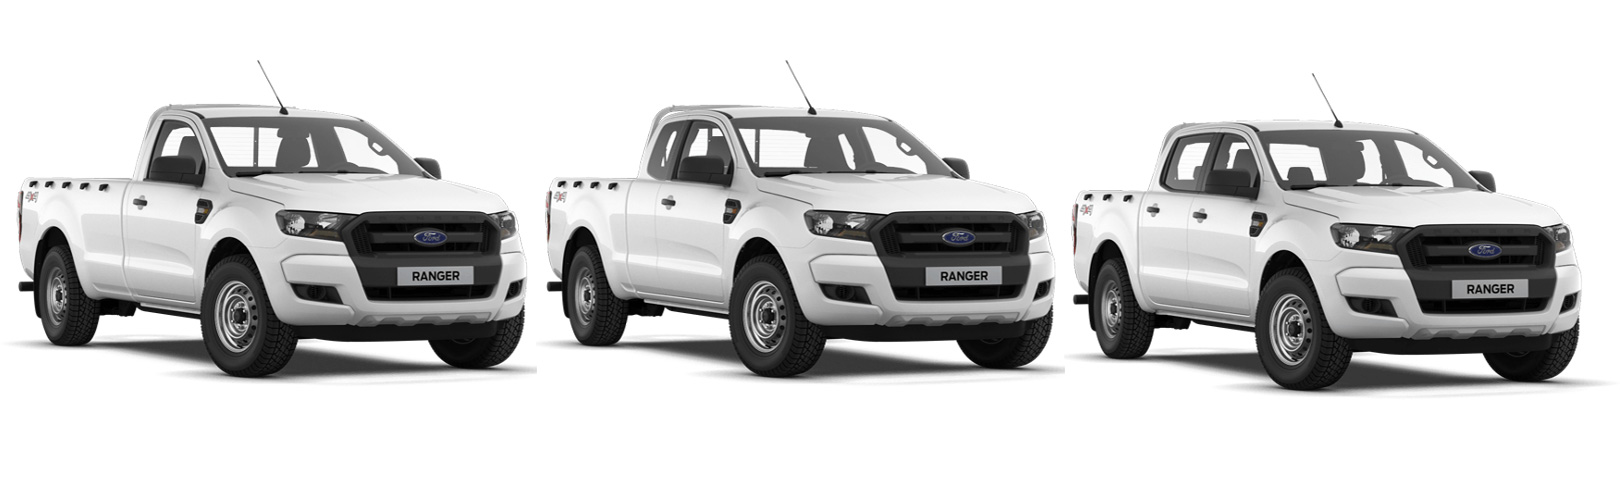 Ford Ranger: Single Cab, Super Cab и Double Cab